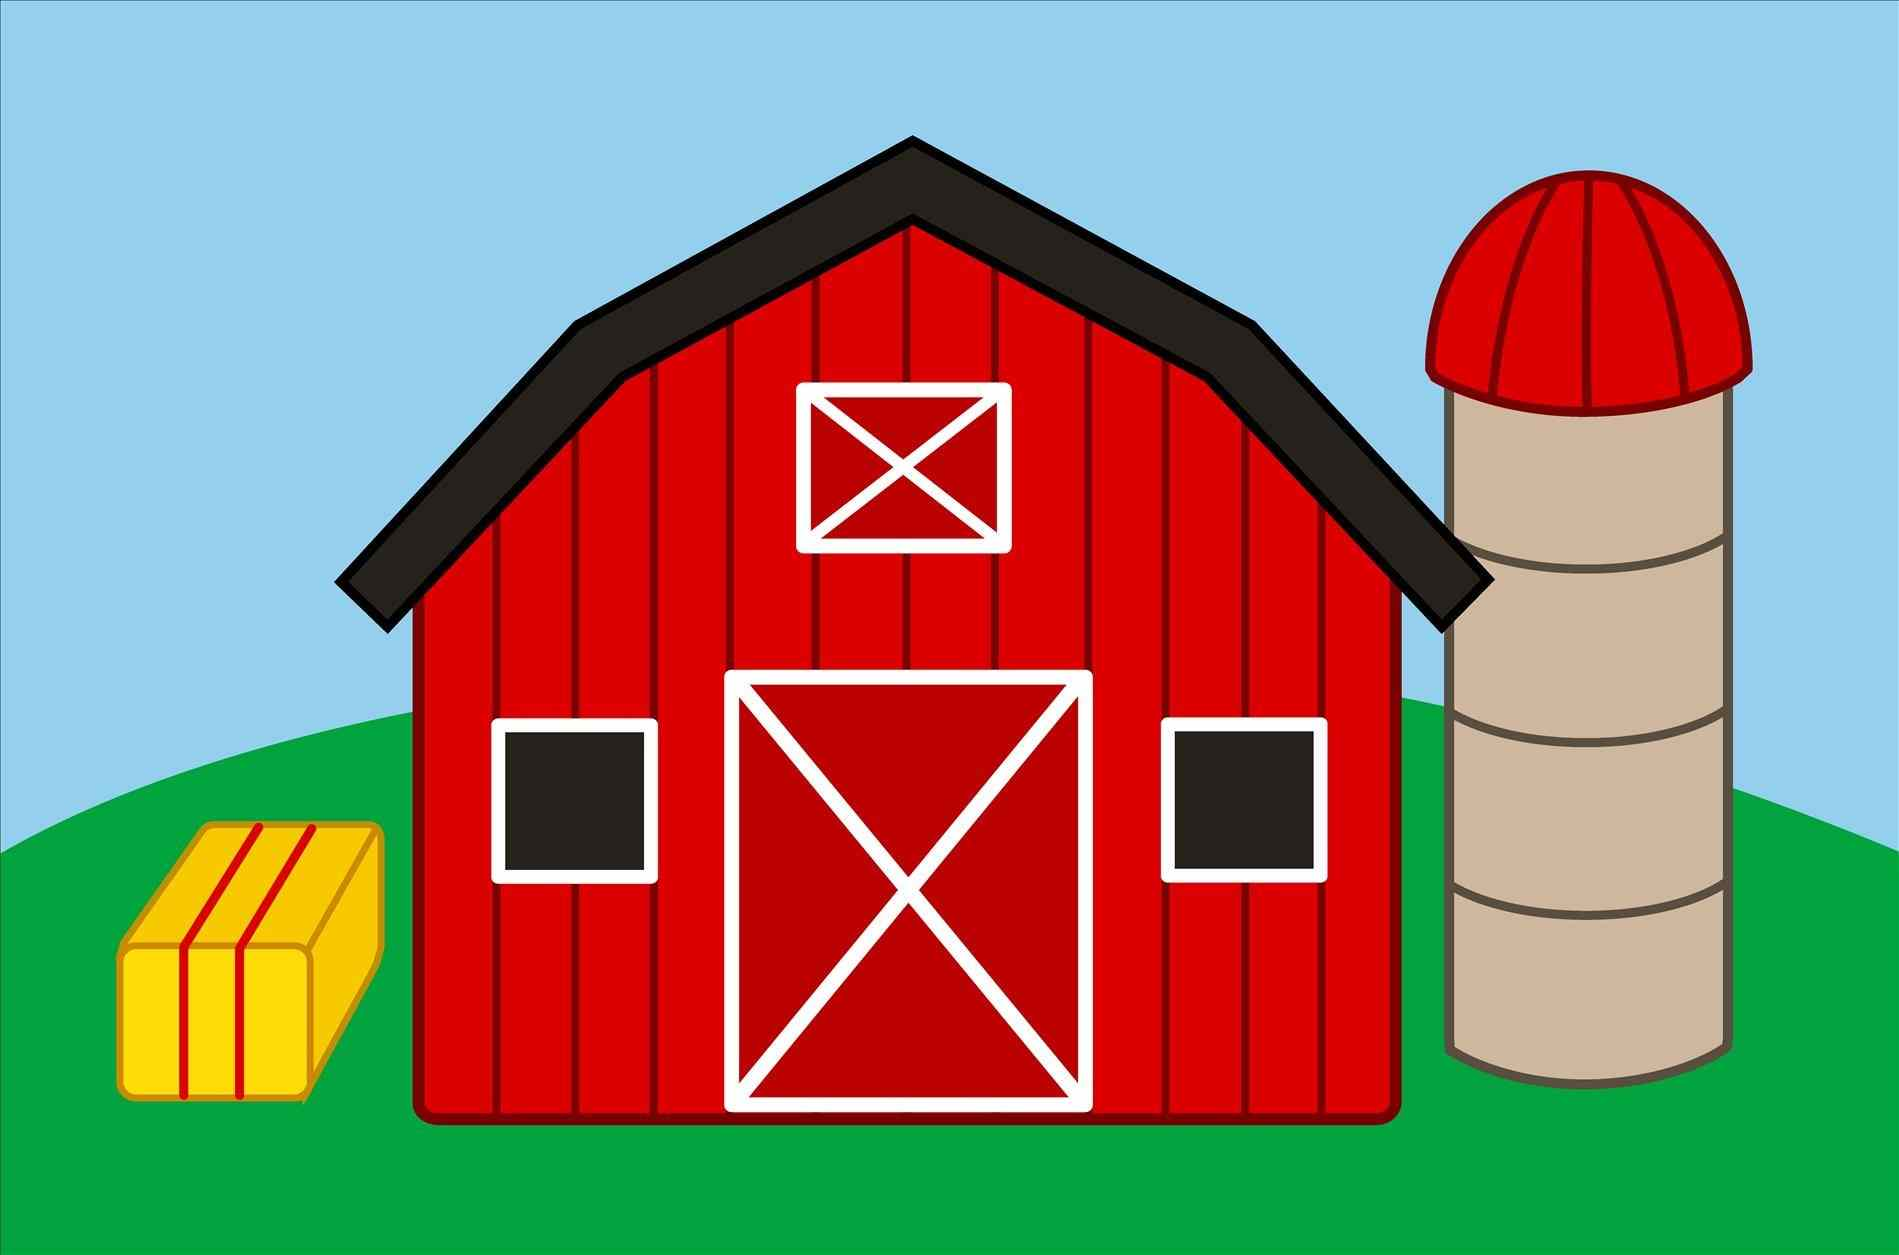 how to draw a red barn